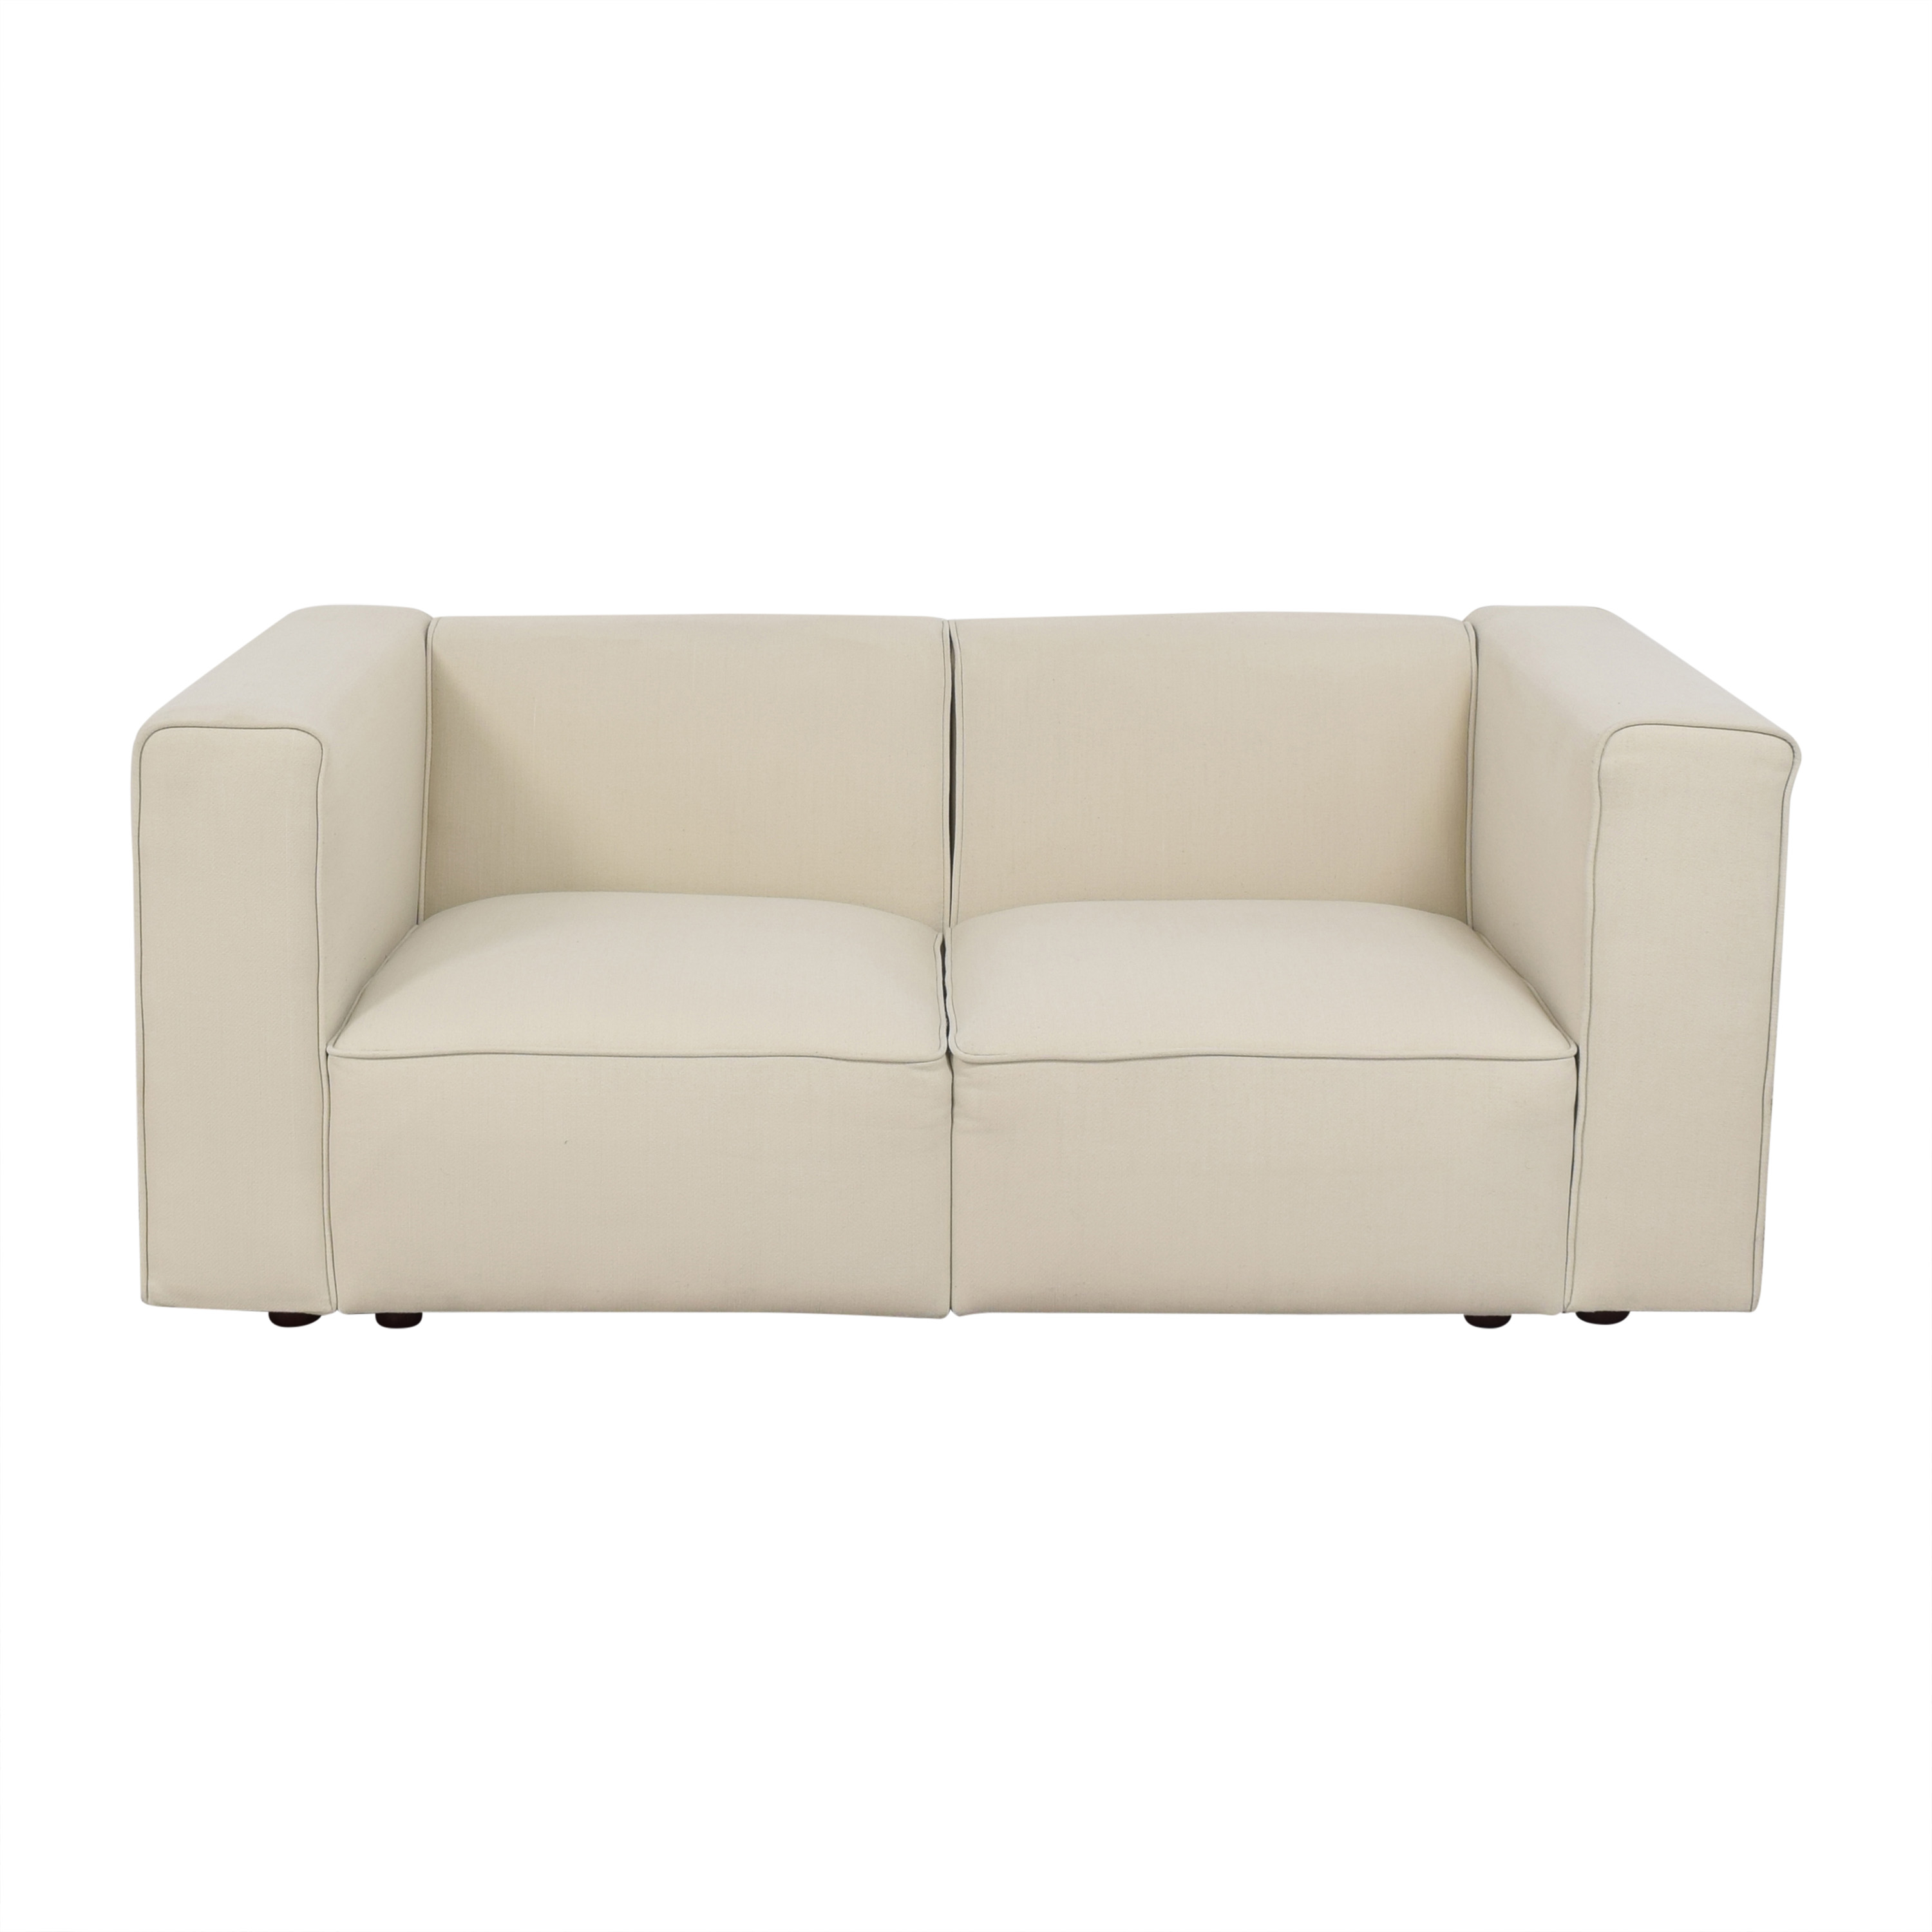 Coddle Coddle Node Modular Loveseat with Ottoman coupon